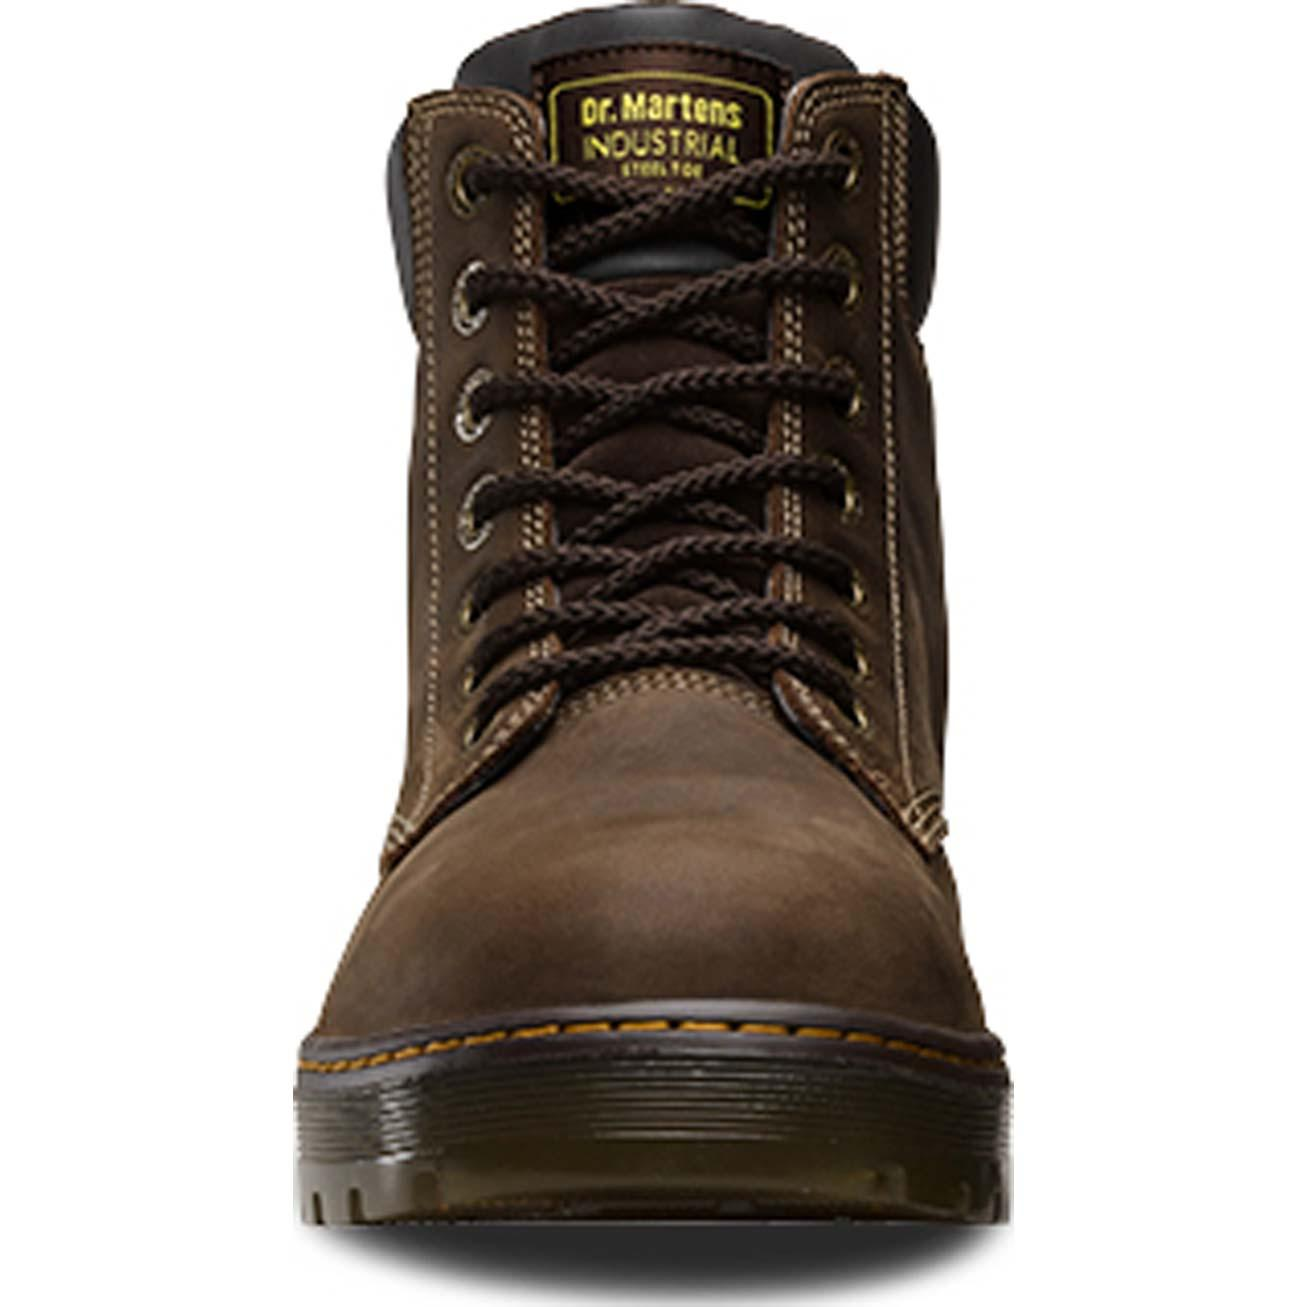 d637c9e31ae Dr. Martens Winch EW Steel Toe Work Boot